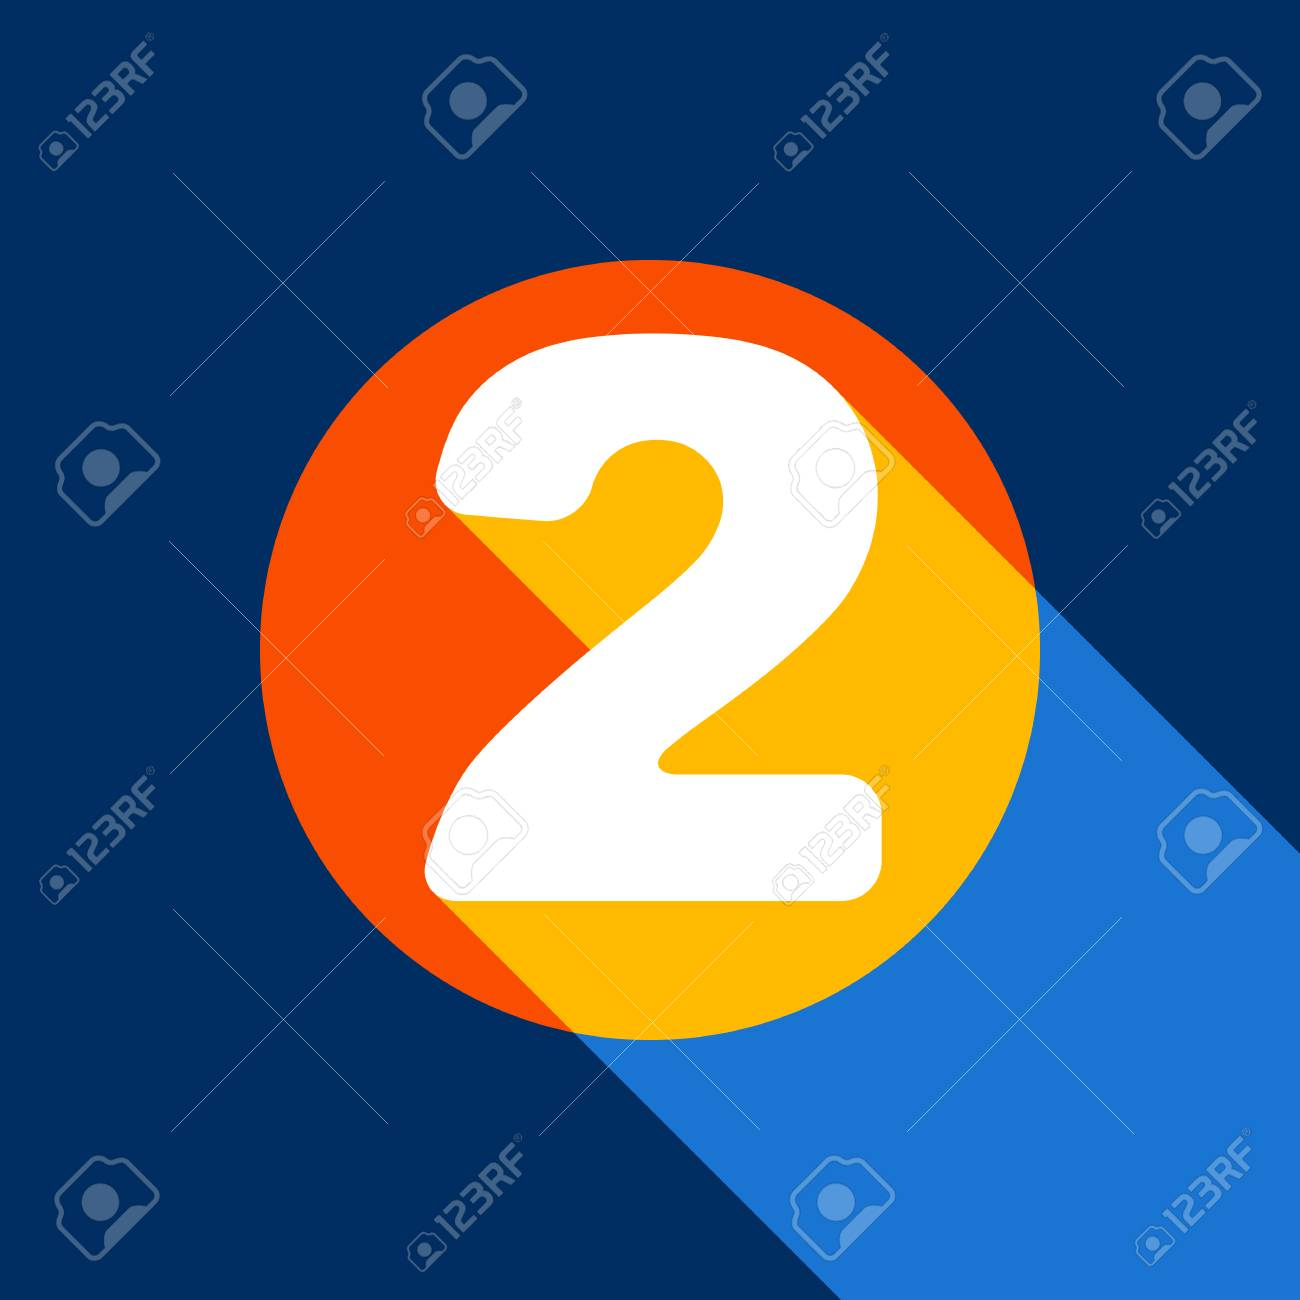 Number 2 sign design template elements. Vector. White icon on tangelo circle with infinite shadow of light at cool black background. Selective yellow and bright navy blue are produced. - 90134392